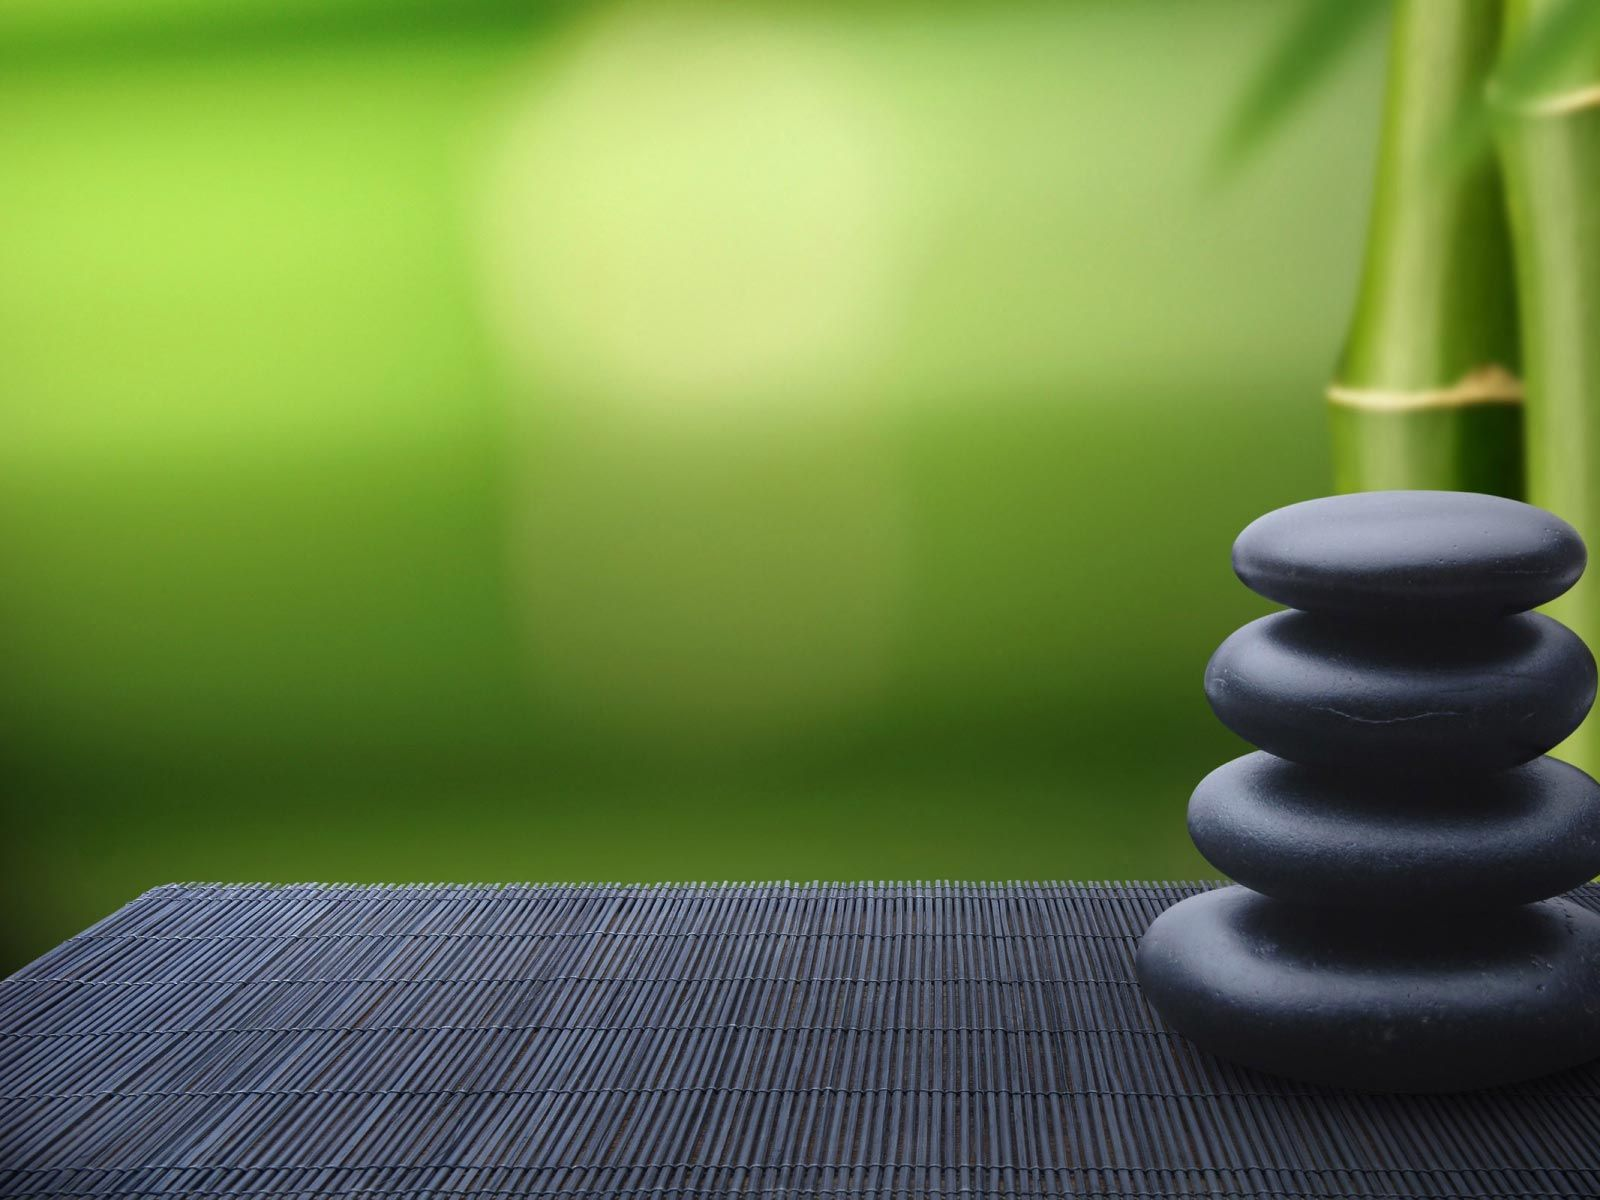 Zen Meditation Wallpapers And Backgrounds Download